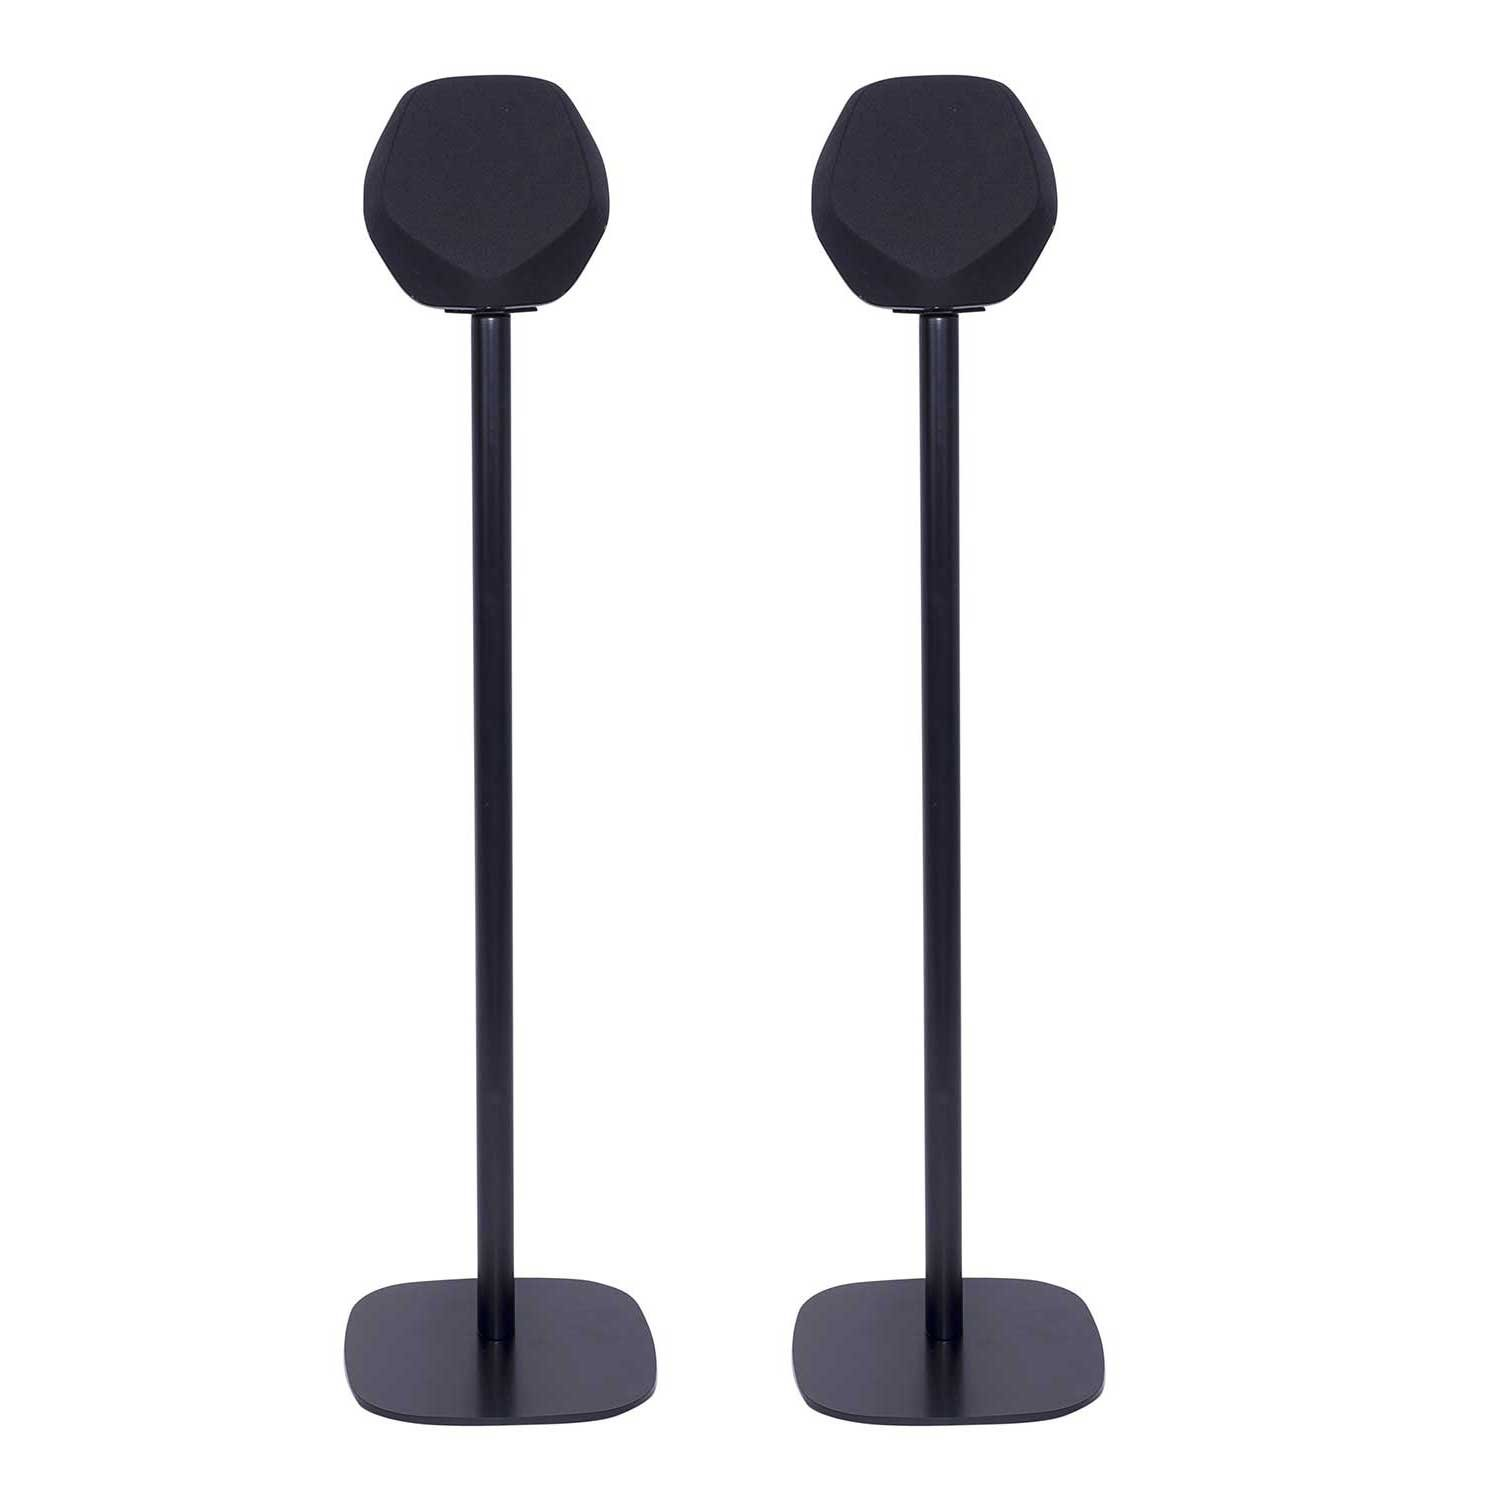 Vebos床スタンドB & O BeoPlay s3ブラックセットen最適な経験in Every B07D77YW4W Room – & を使用すると s3、Place Your B & O BeoPlay s3 – する場所に正確と互換性B & O BeoPlay s3 B07D77YW4W, en-nui:404bc3af --- itxassou.fr